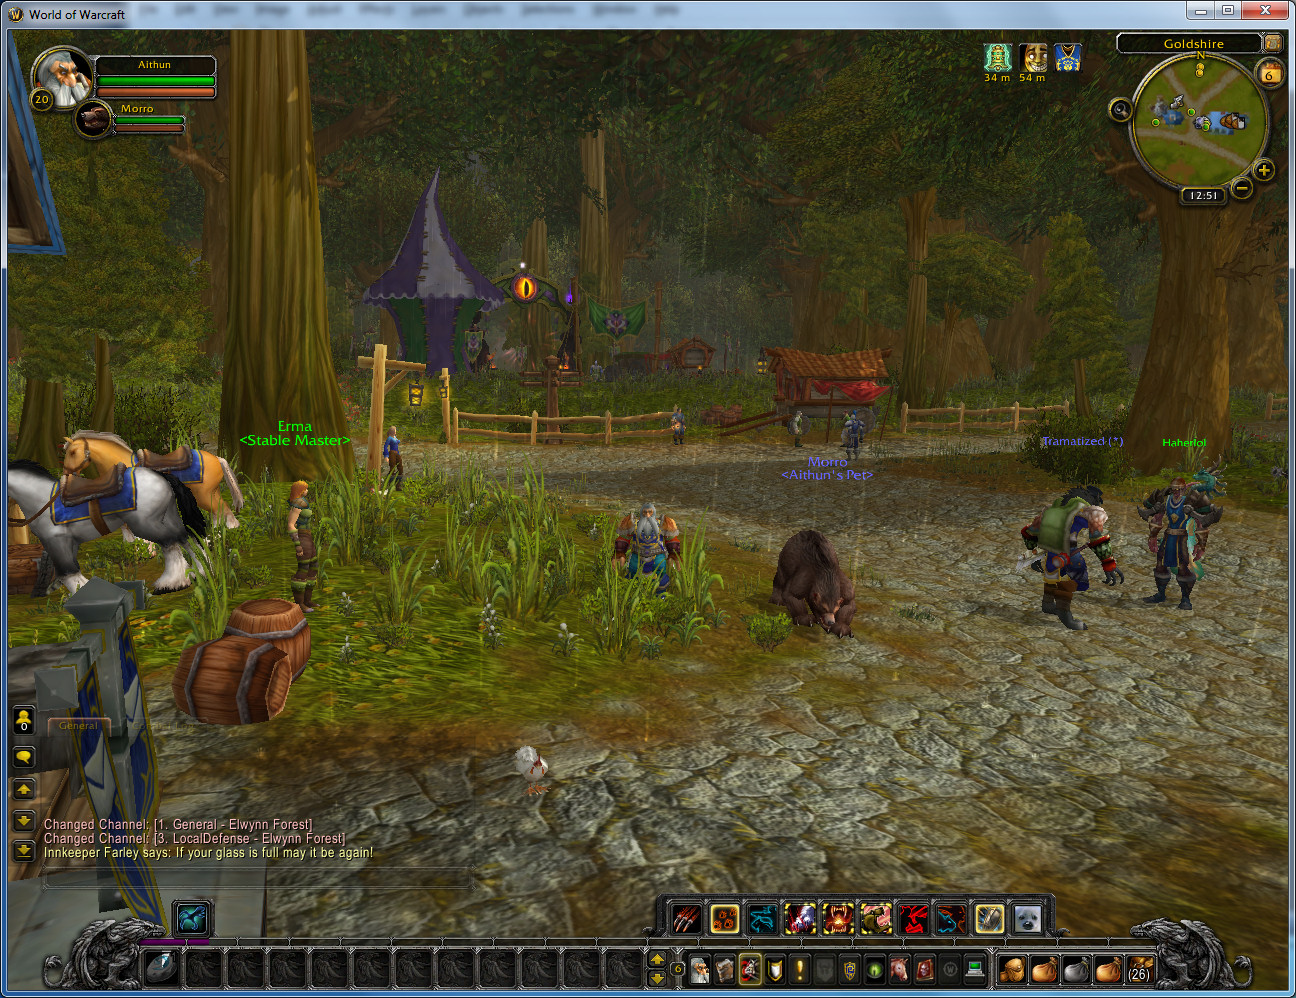 2014-02-05-WoW-Goldshire-2